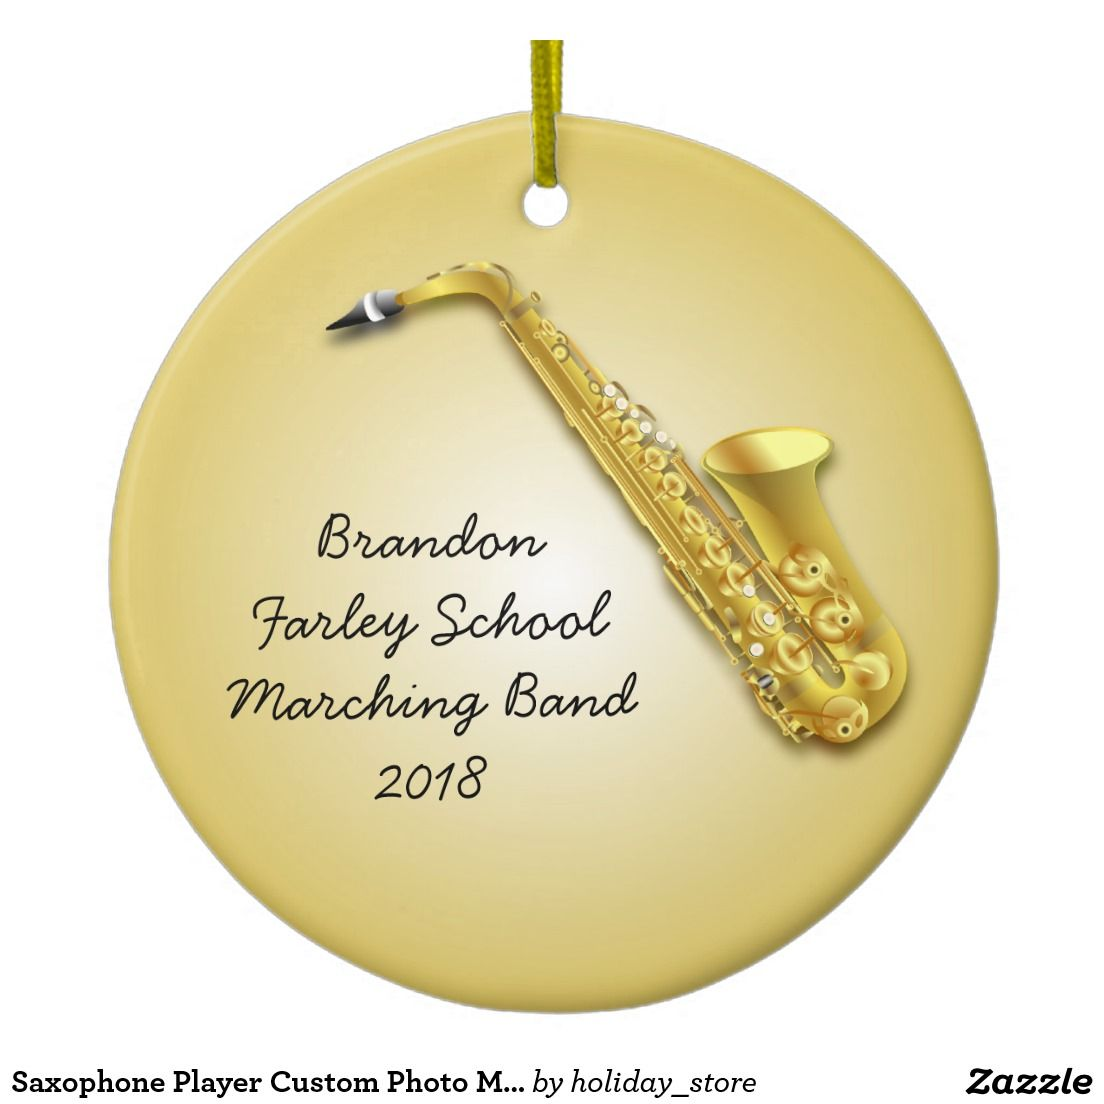 Musical christmas ornaments that play music - Saxophone Player Custom Photo Musicians Ornament